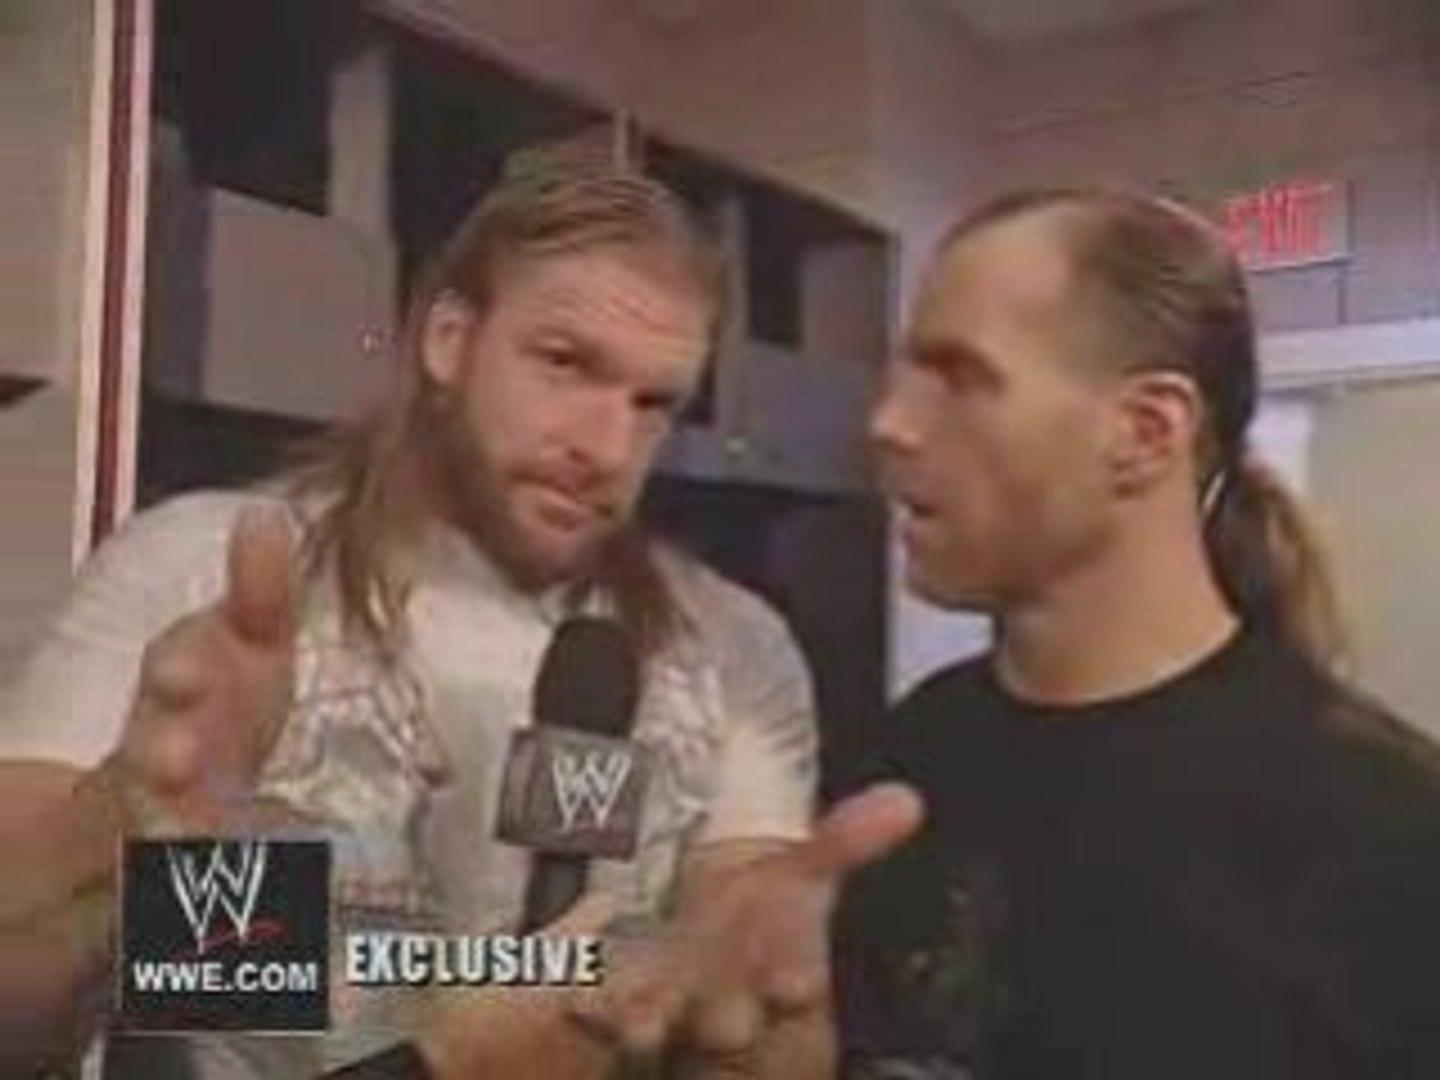 WWE EXCLUSIVE hbk hhh interview